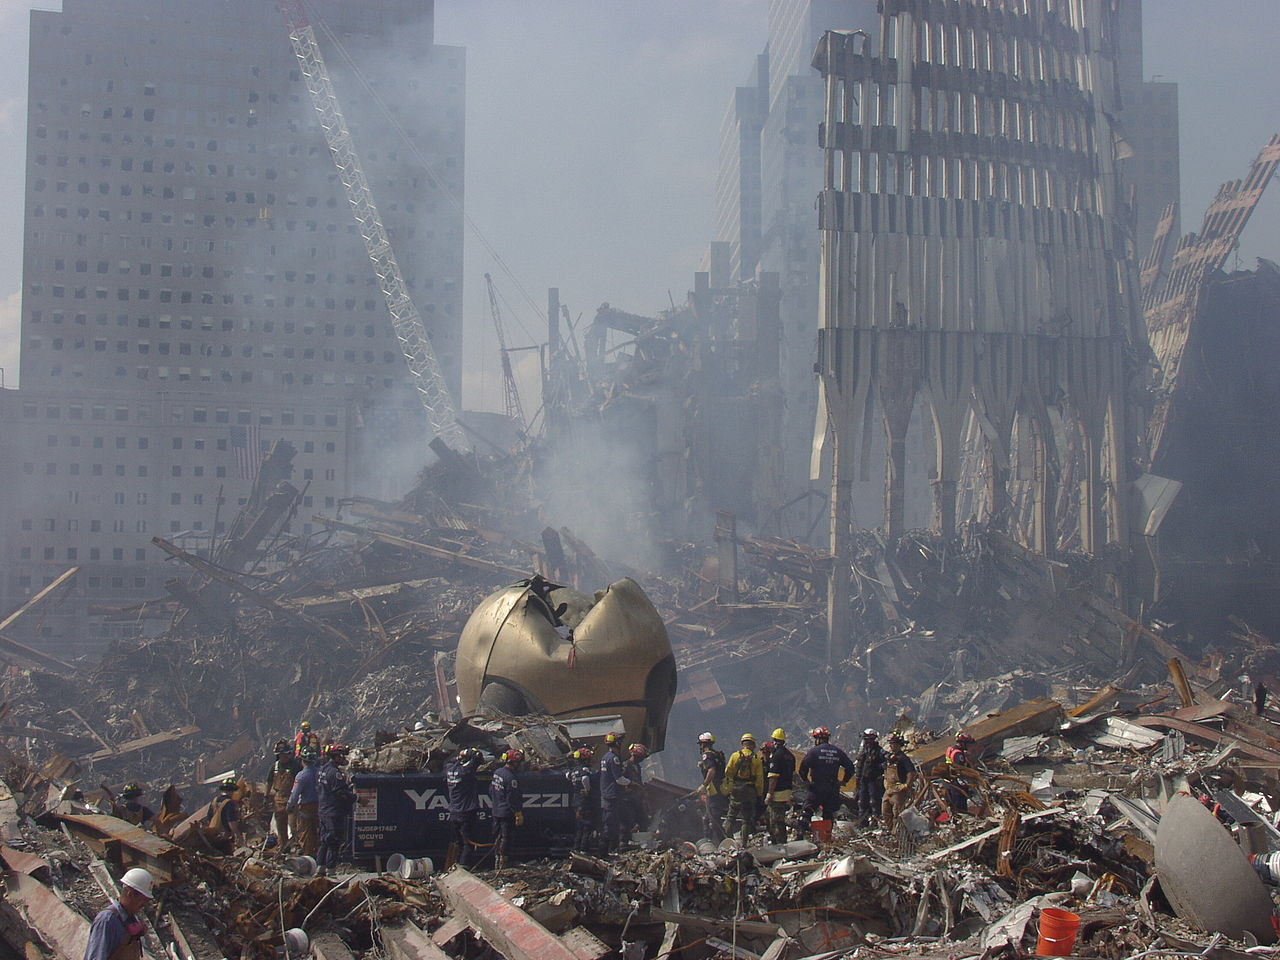 The Sphere was badly damaged by the September 11th attack. Its reconstruction and rededication became a symbol of hope.